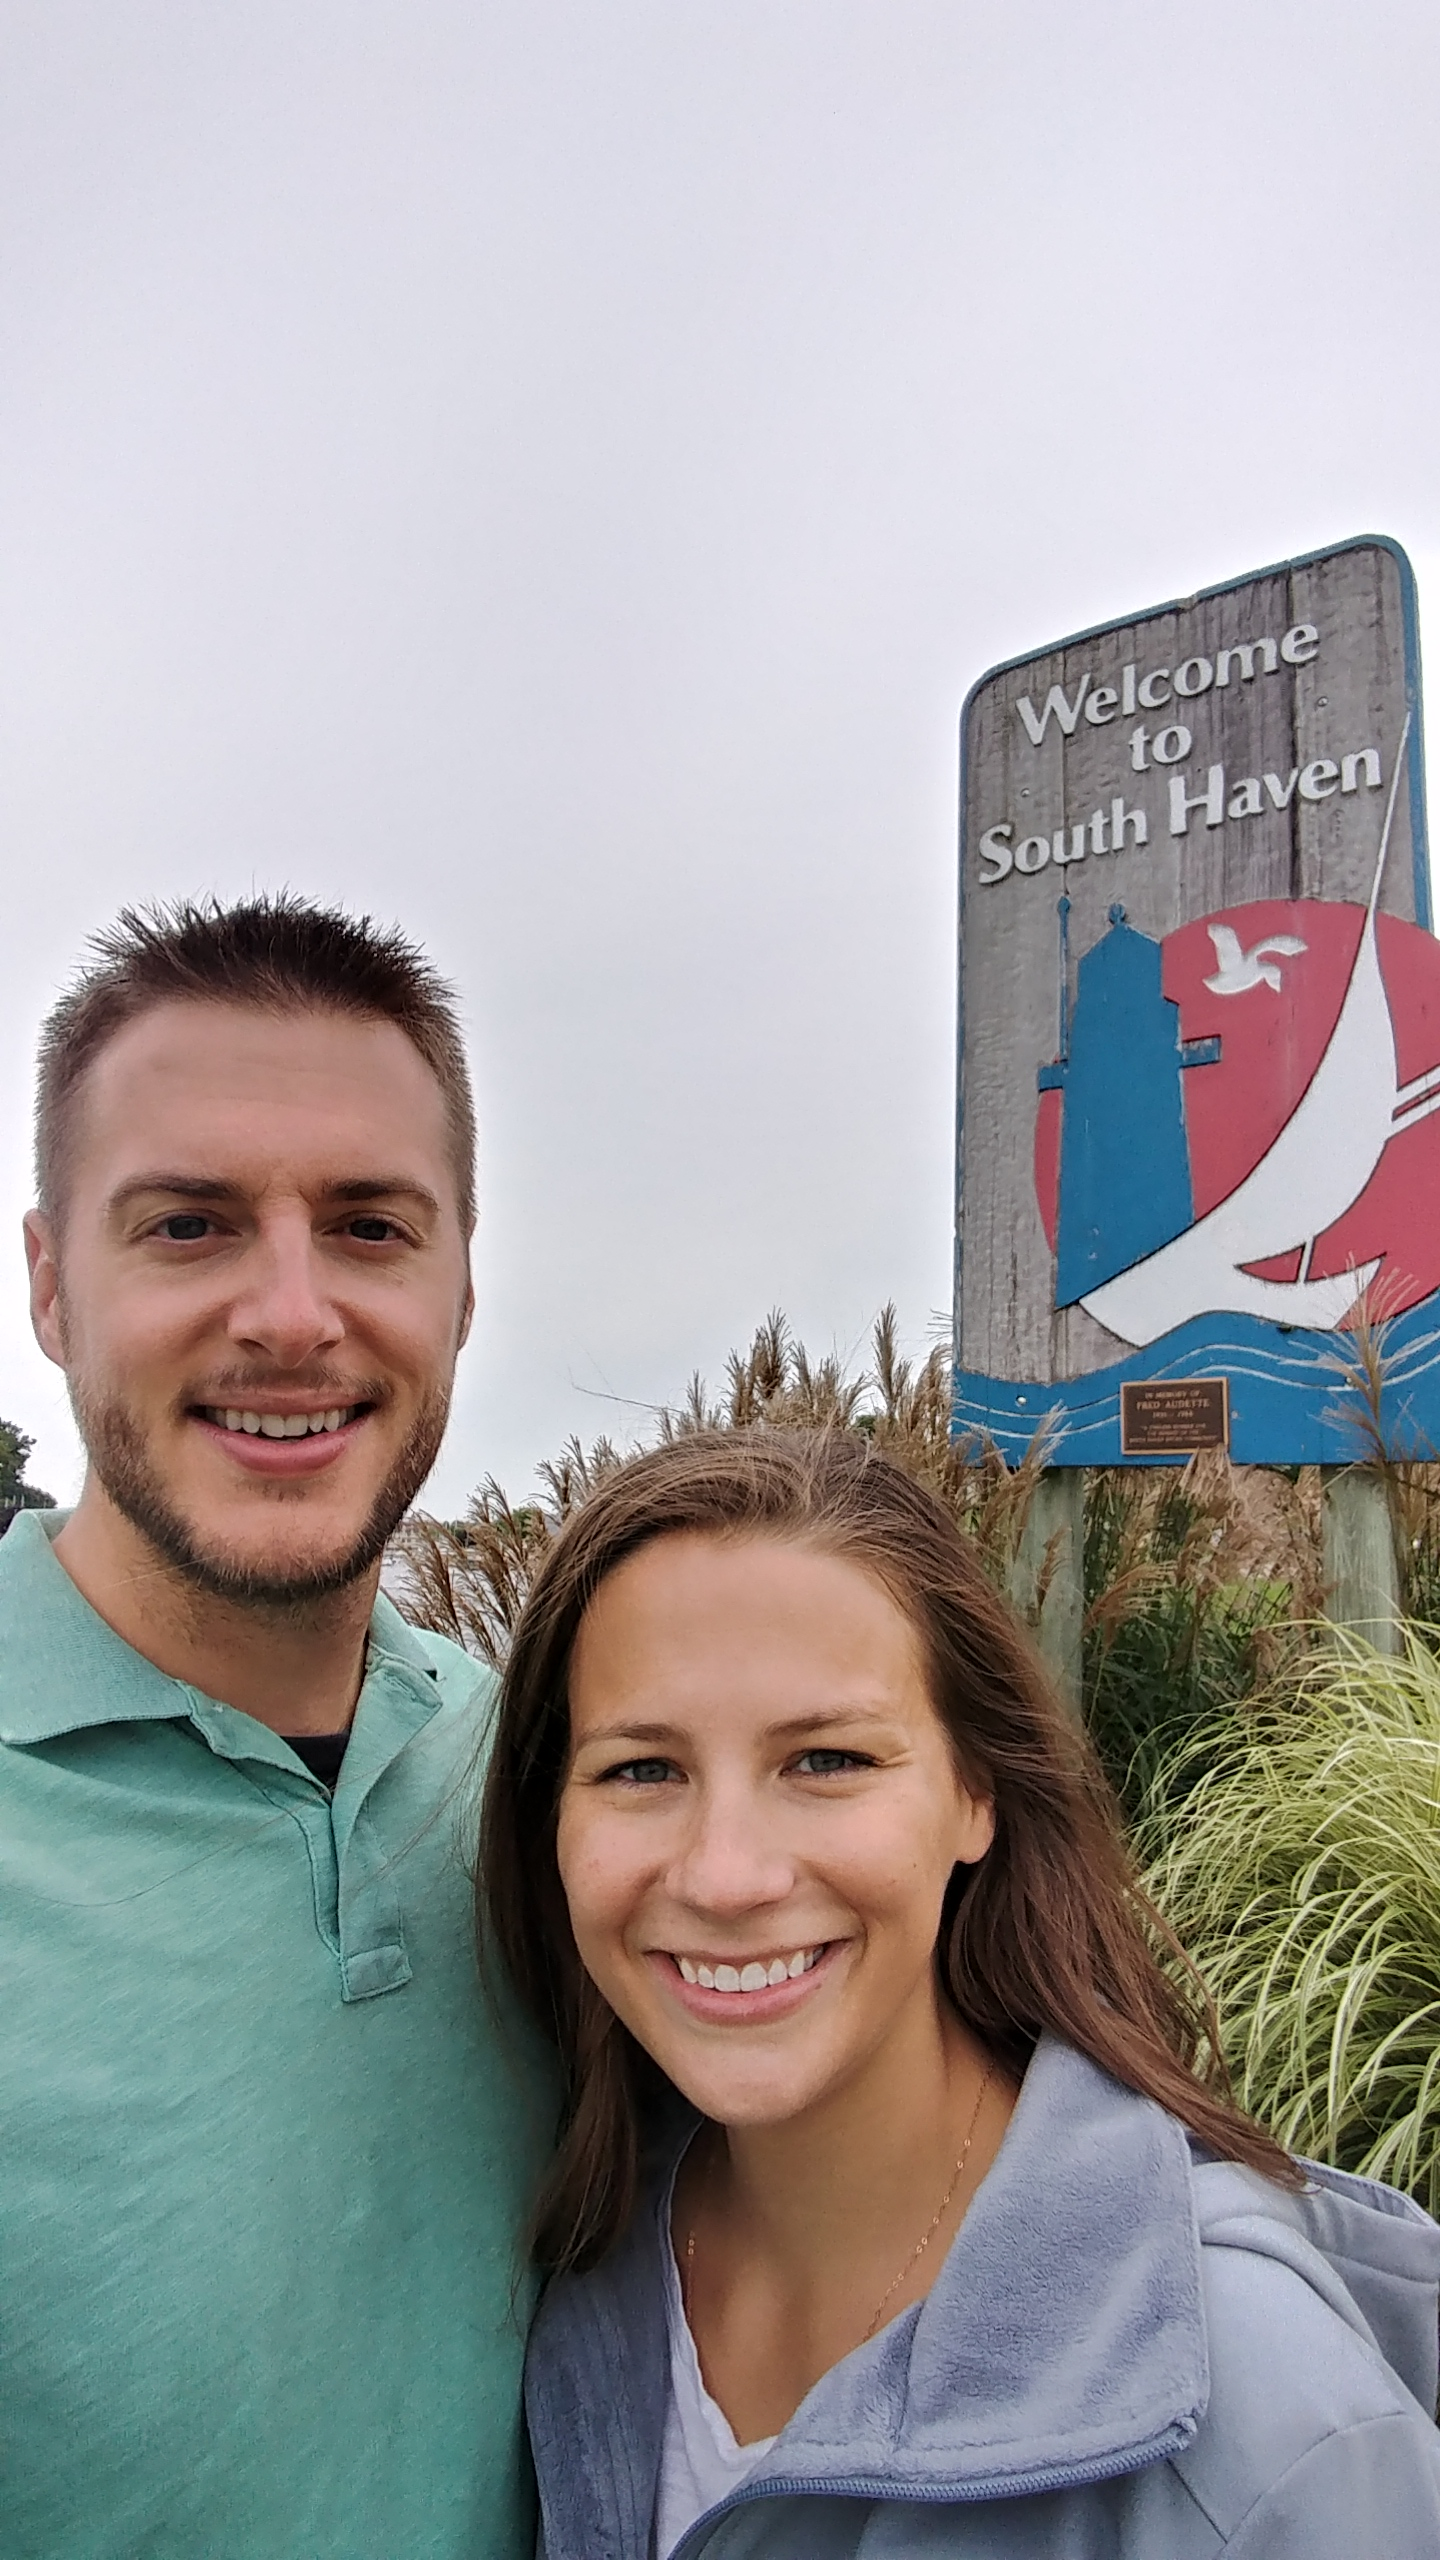 South Haven Welcome